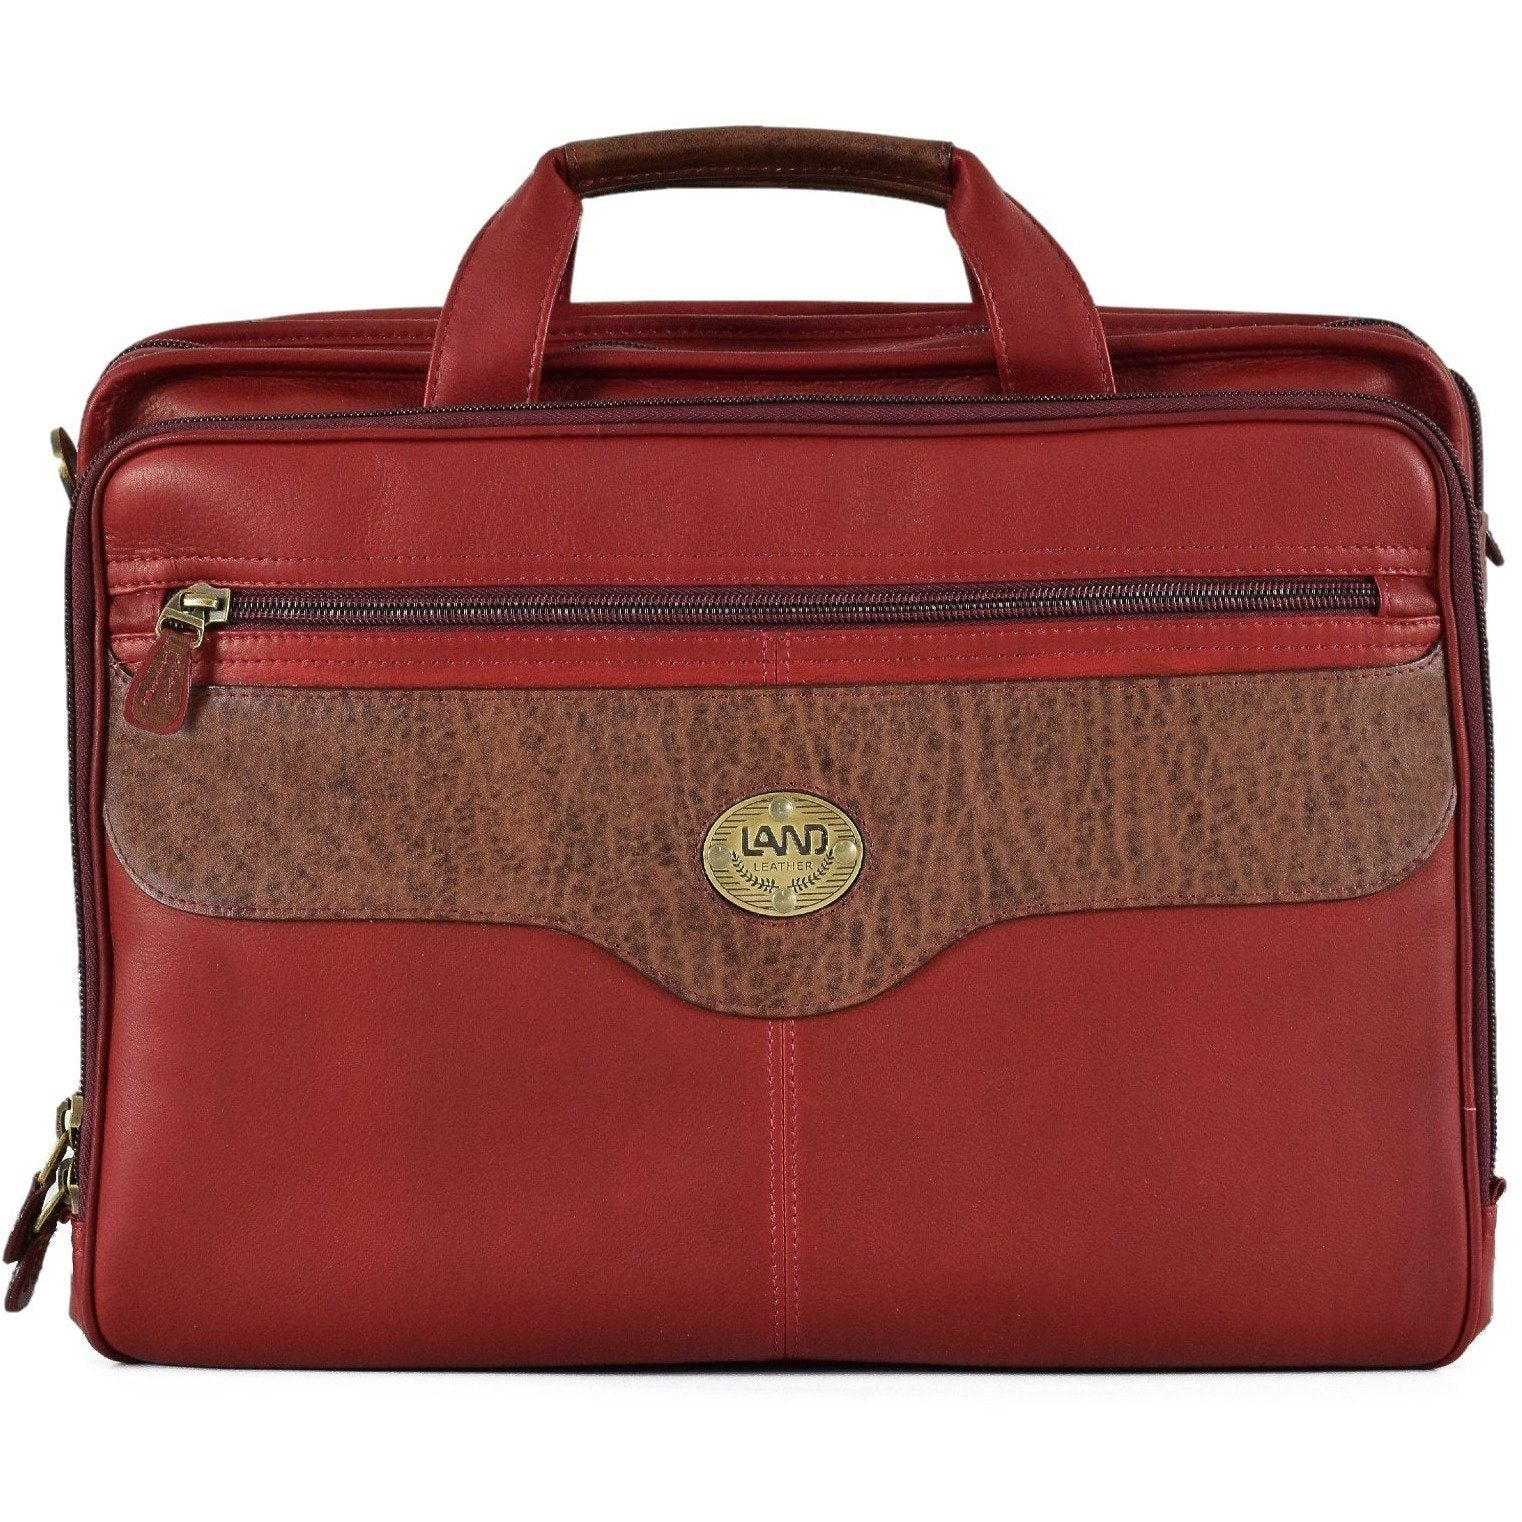 Anniversary Traveler Briefcase, Briefcase | LAND Leather